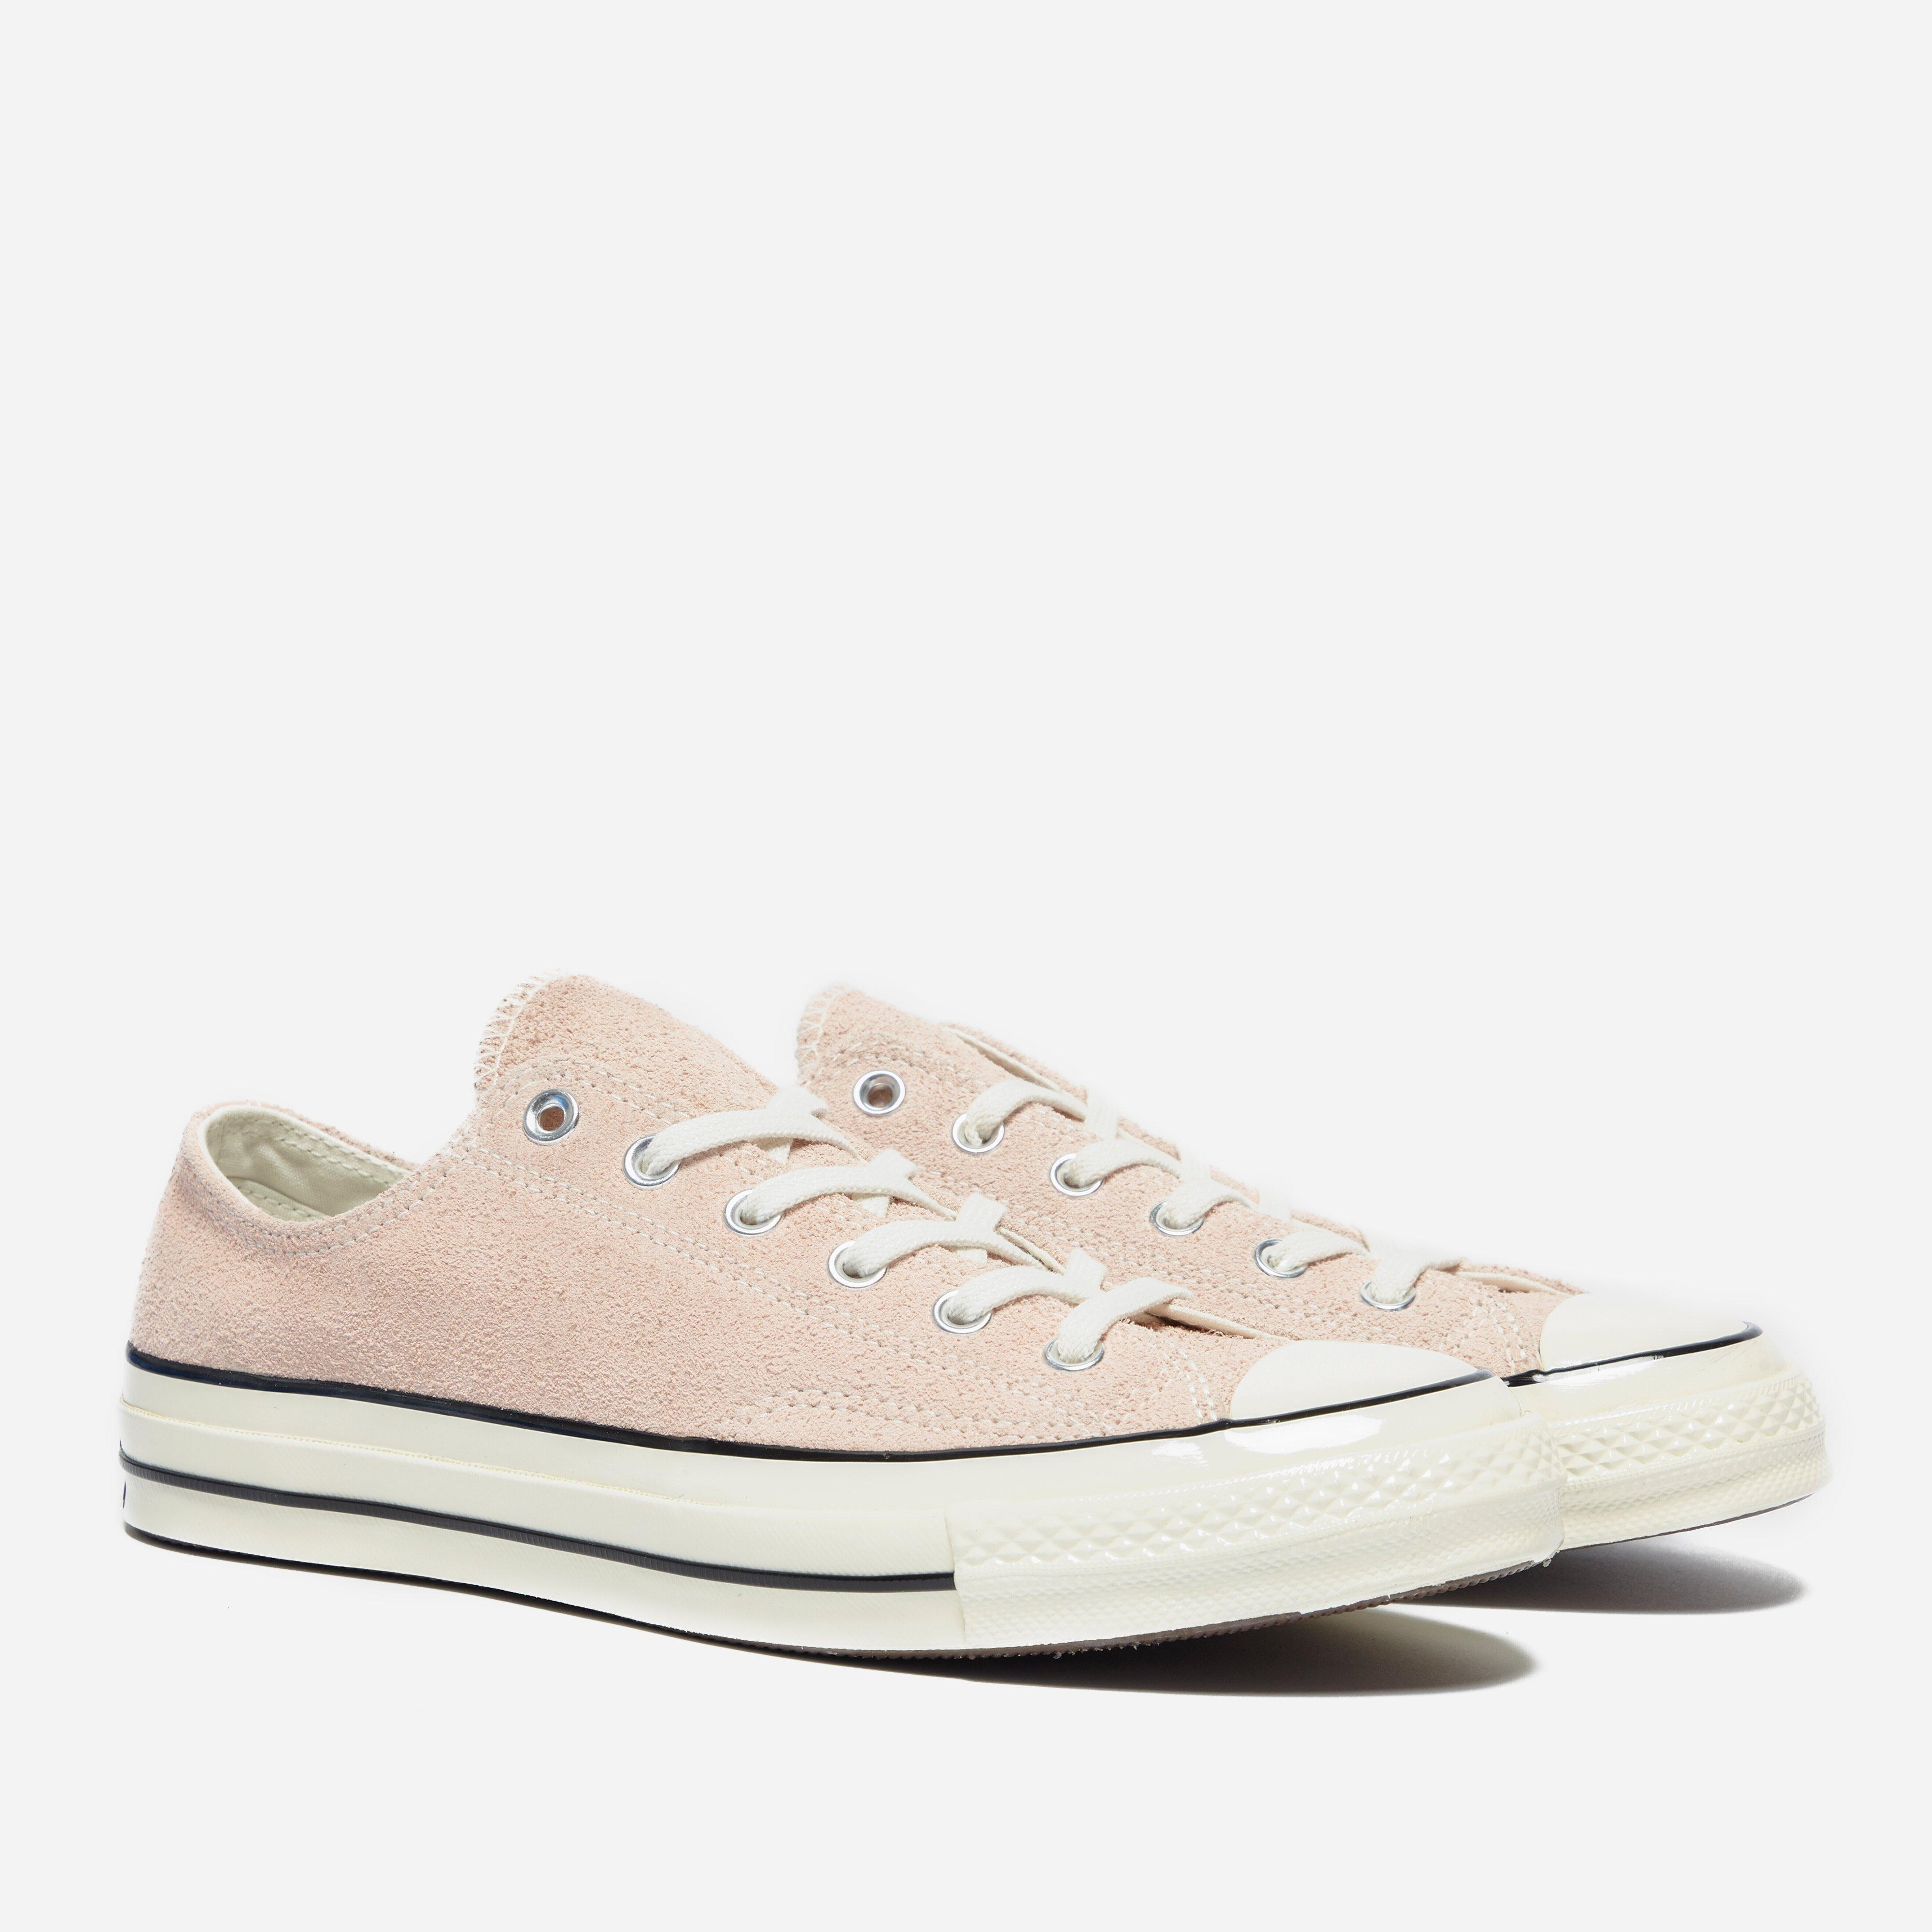 3a6138cdfee3 Lyst - Converse Chuck Taylor All Star 1970 Ox Suede in Pink for Men